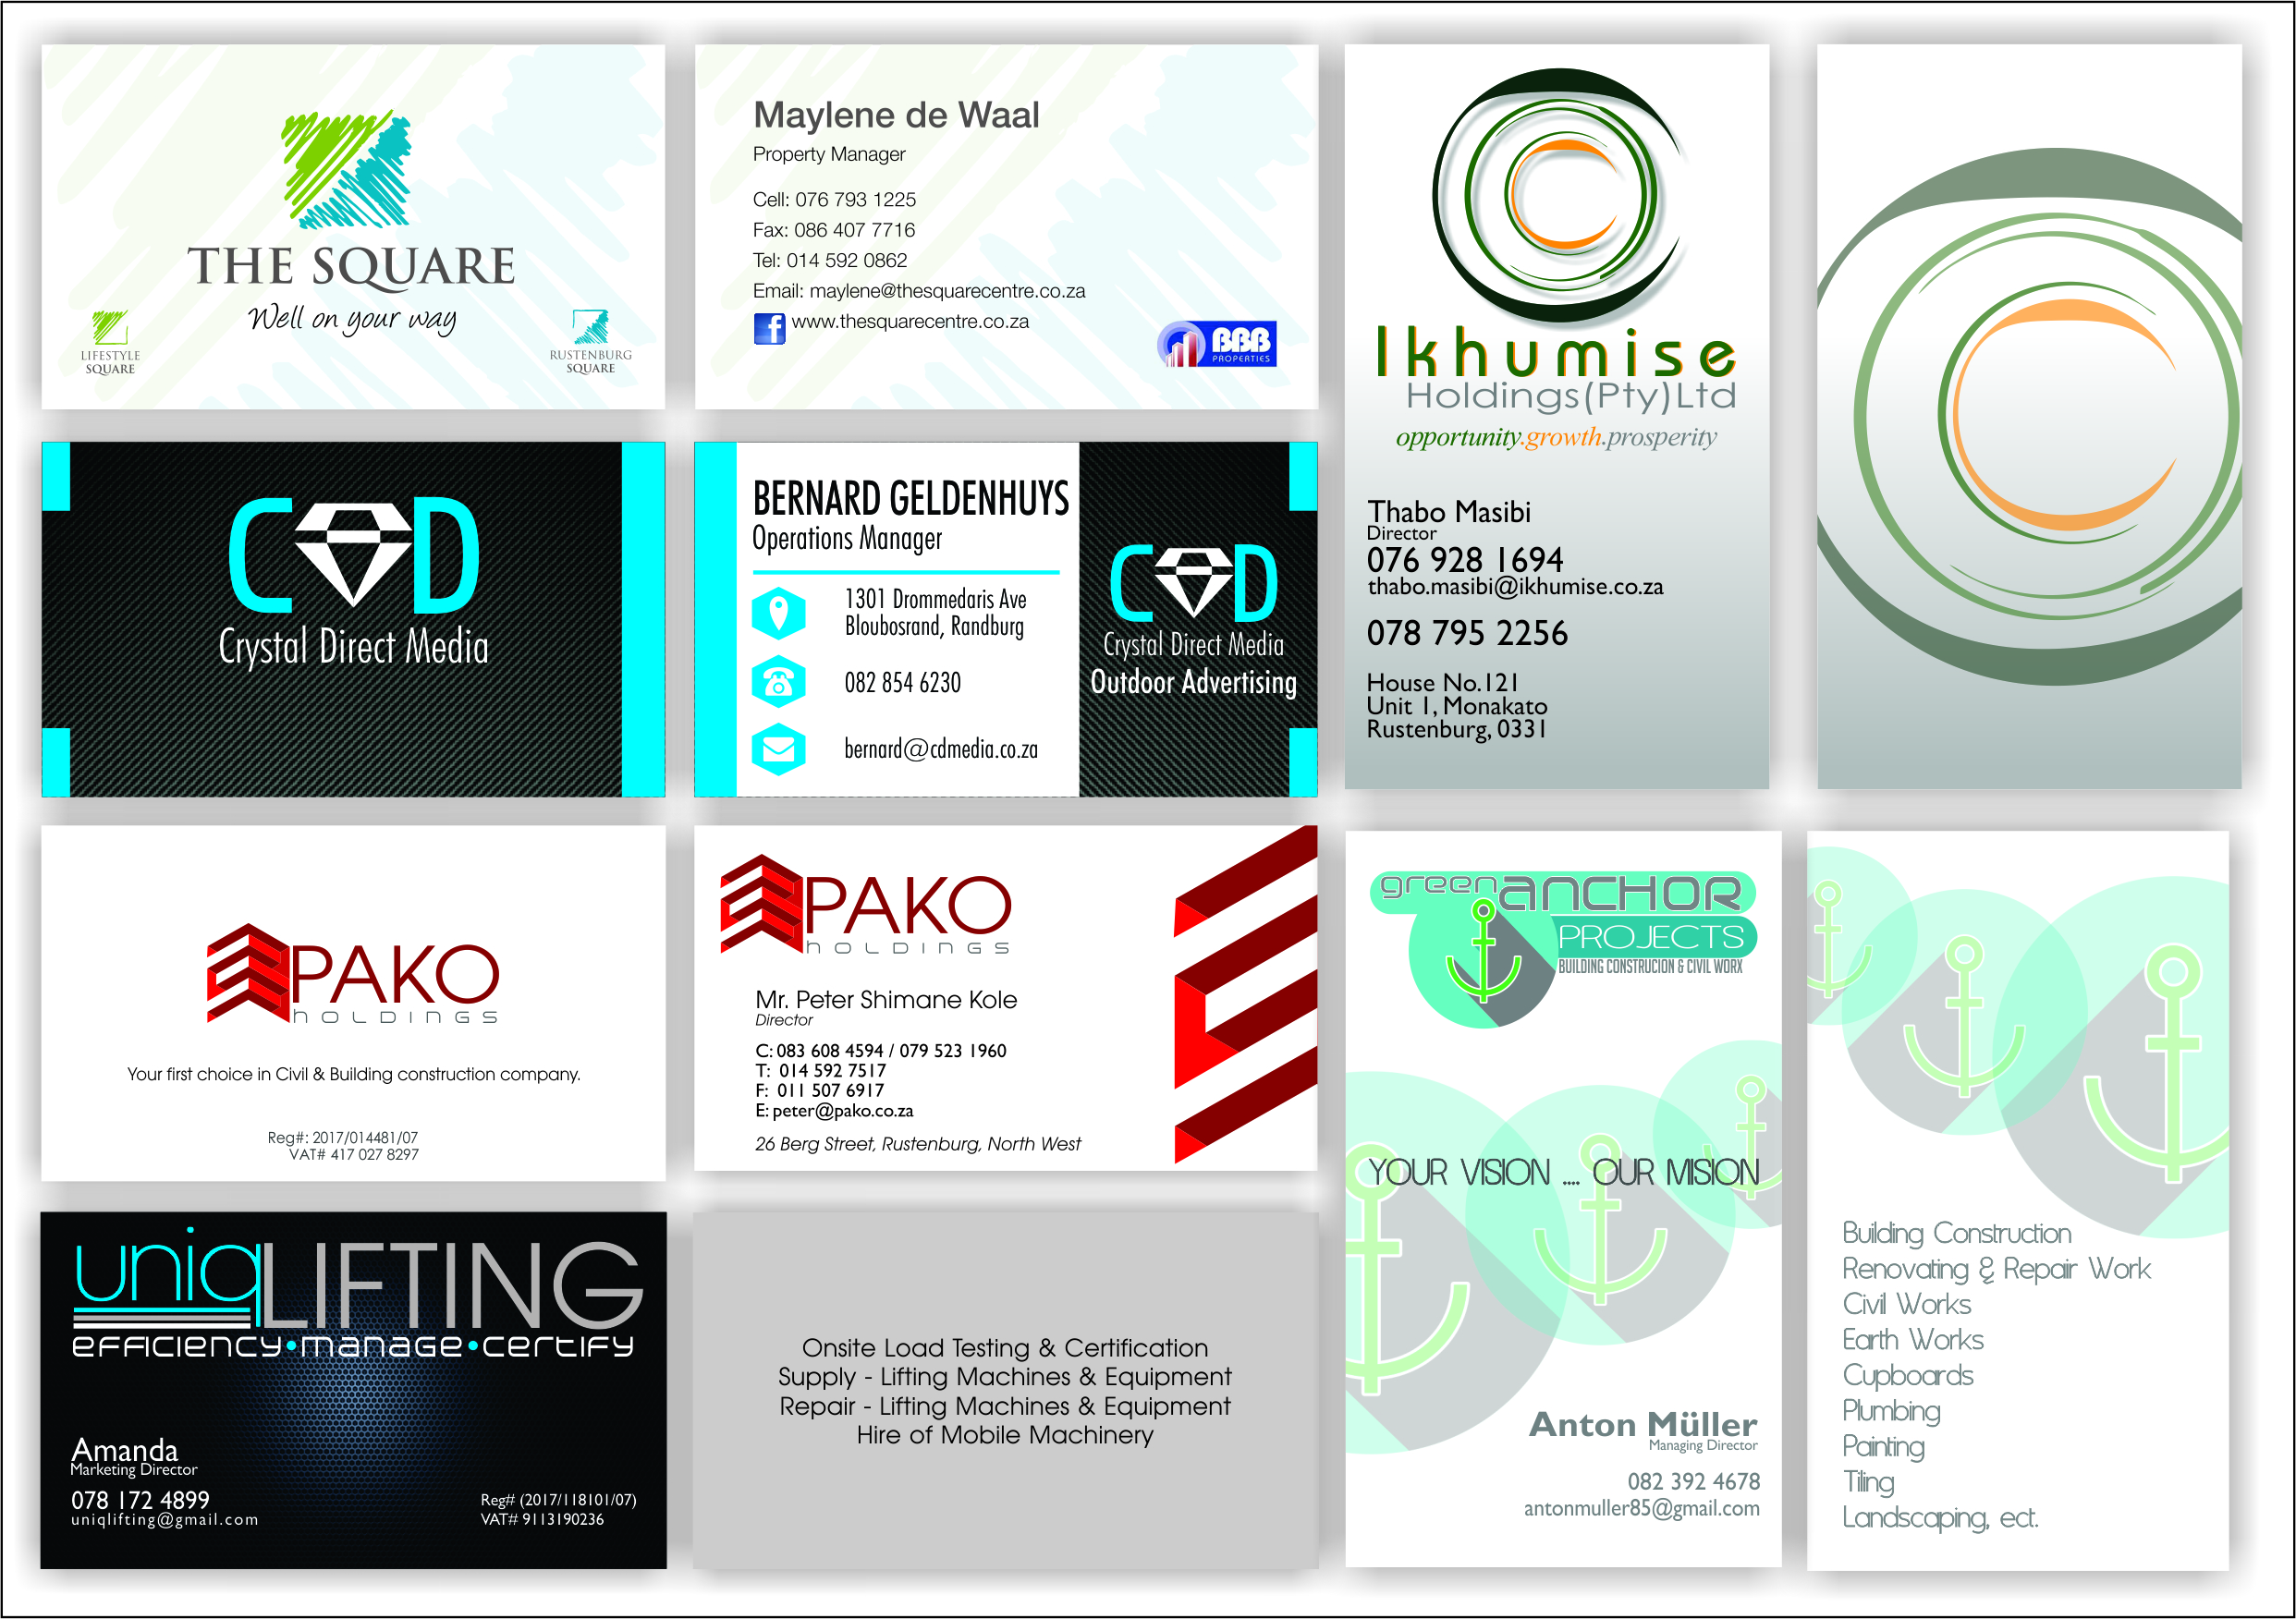 Business cards woodmead images card design and card template business cards randburg gallery card design and card template print studio business cards reheart gallery reheart reheart Gallery